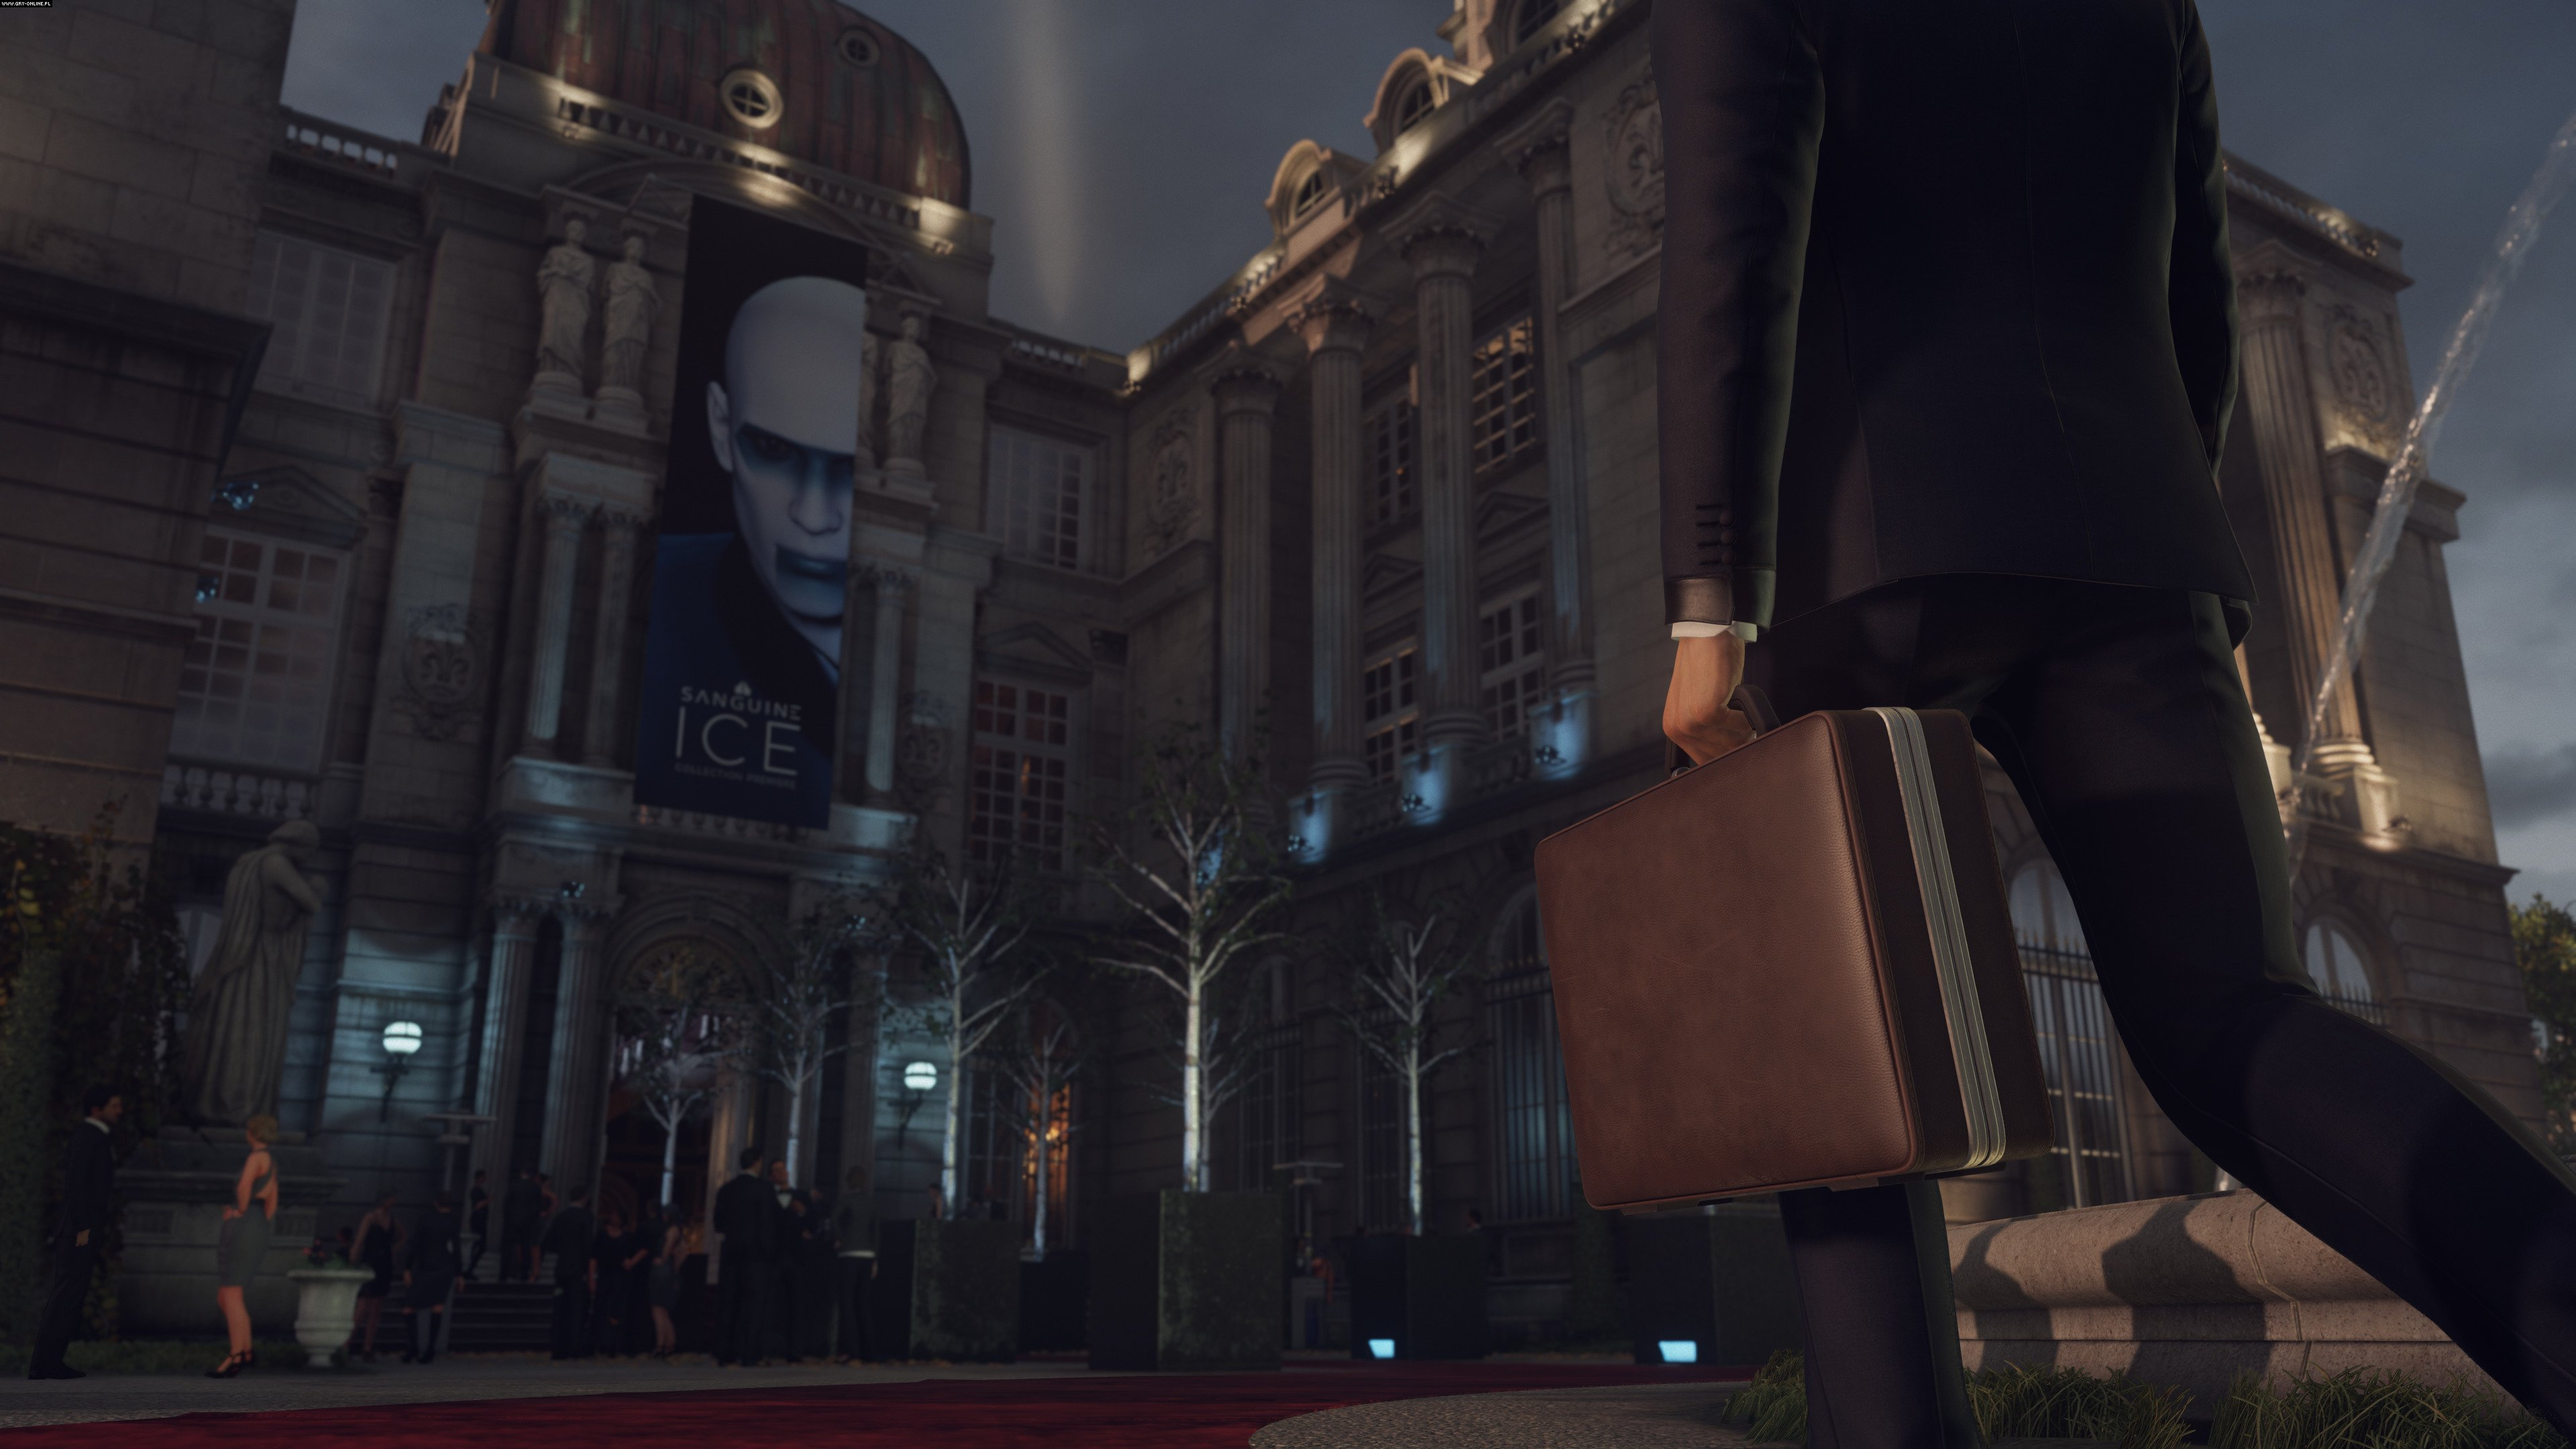 Hitman 2 PC, PS4, XONE Games Image 18/25, IO Interactive, Warner Bros. Interactive Entertainment